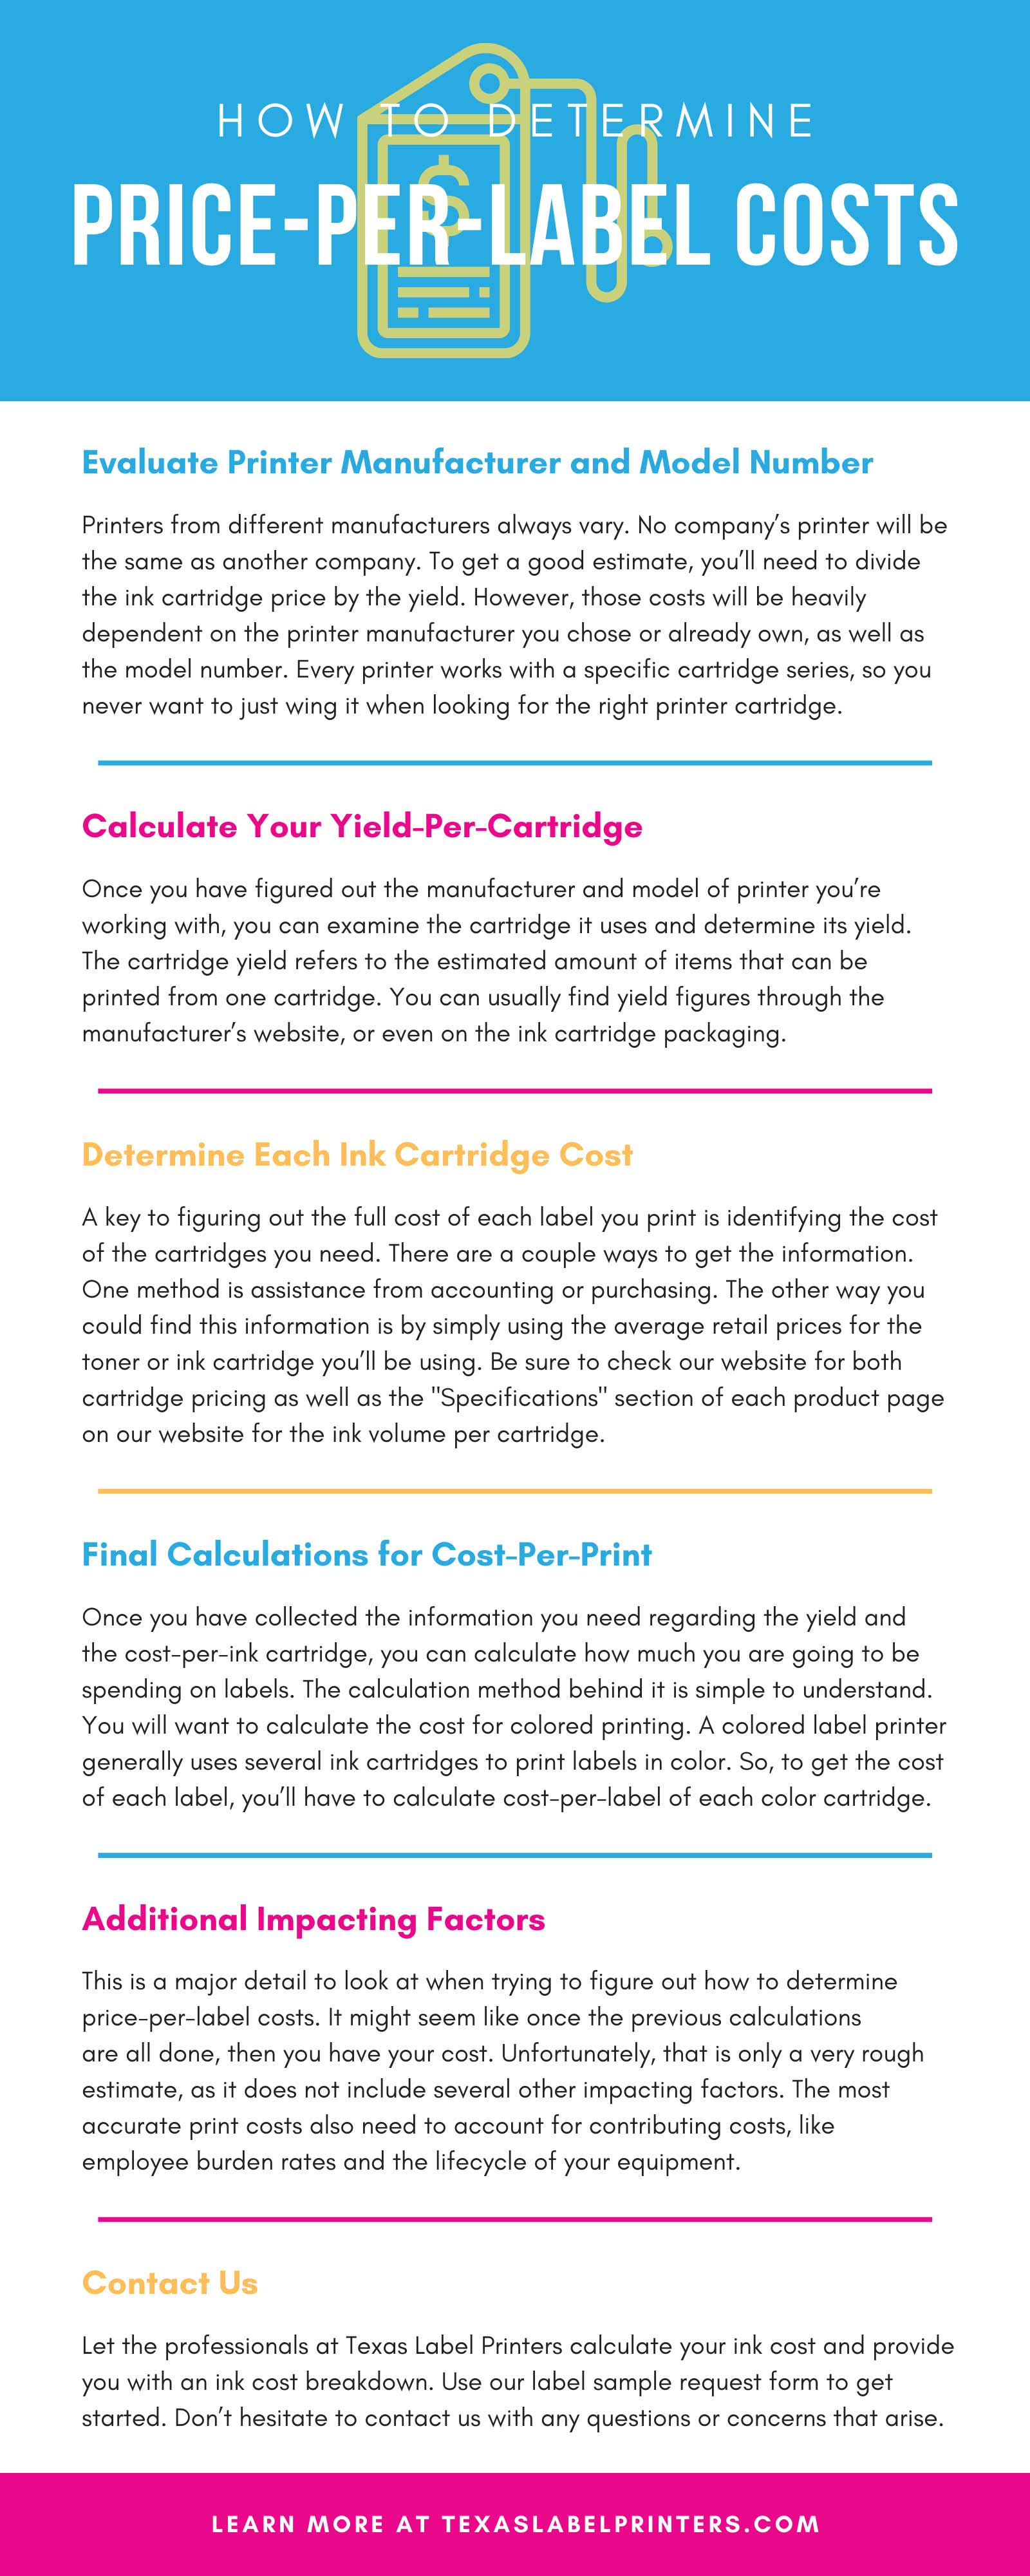 How To Determine Price-Per-Label Costs Infographic